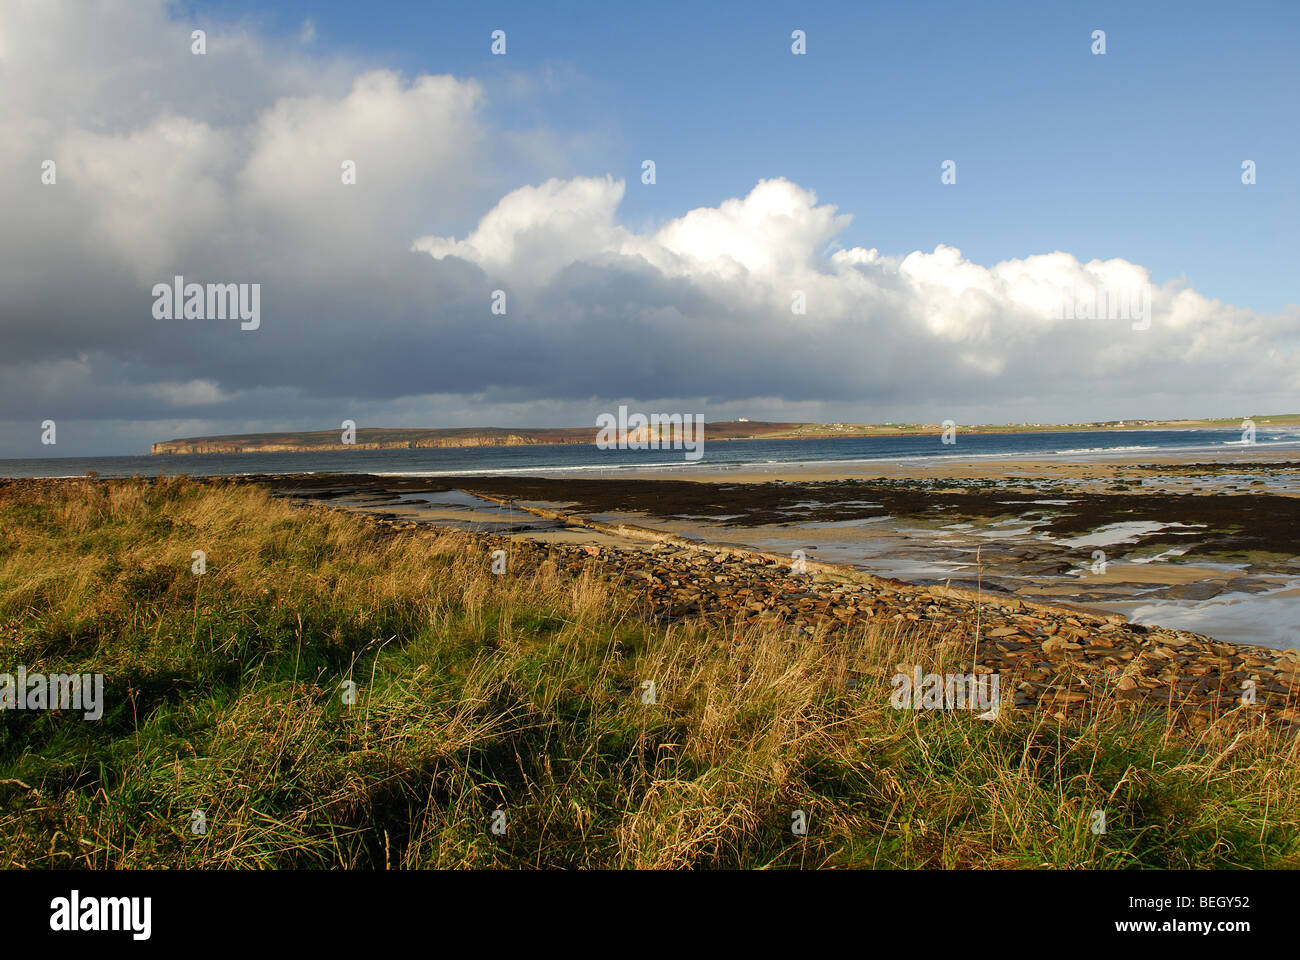 The Bay of Dunnet Caithness Scotland. - Stock Image